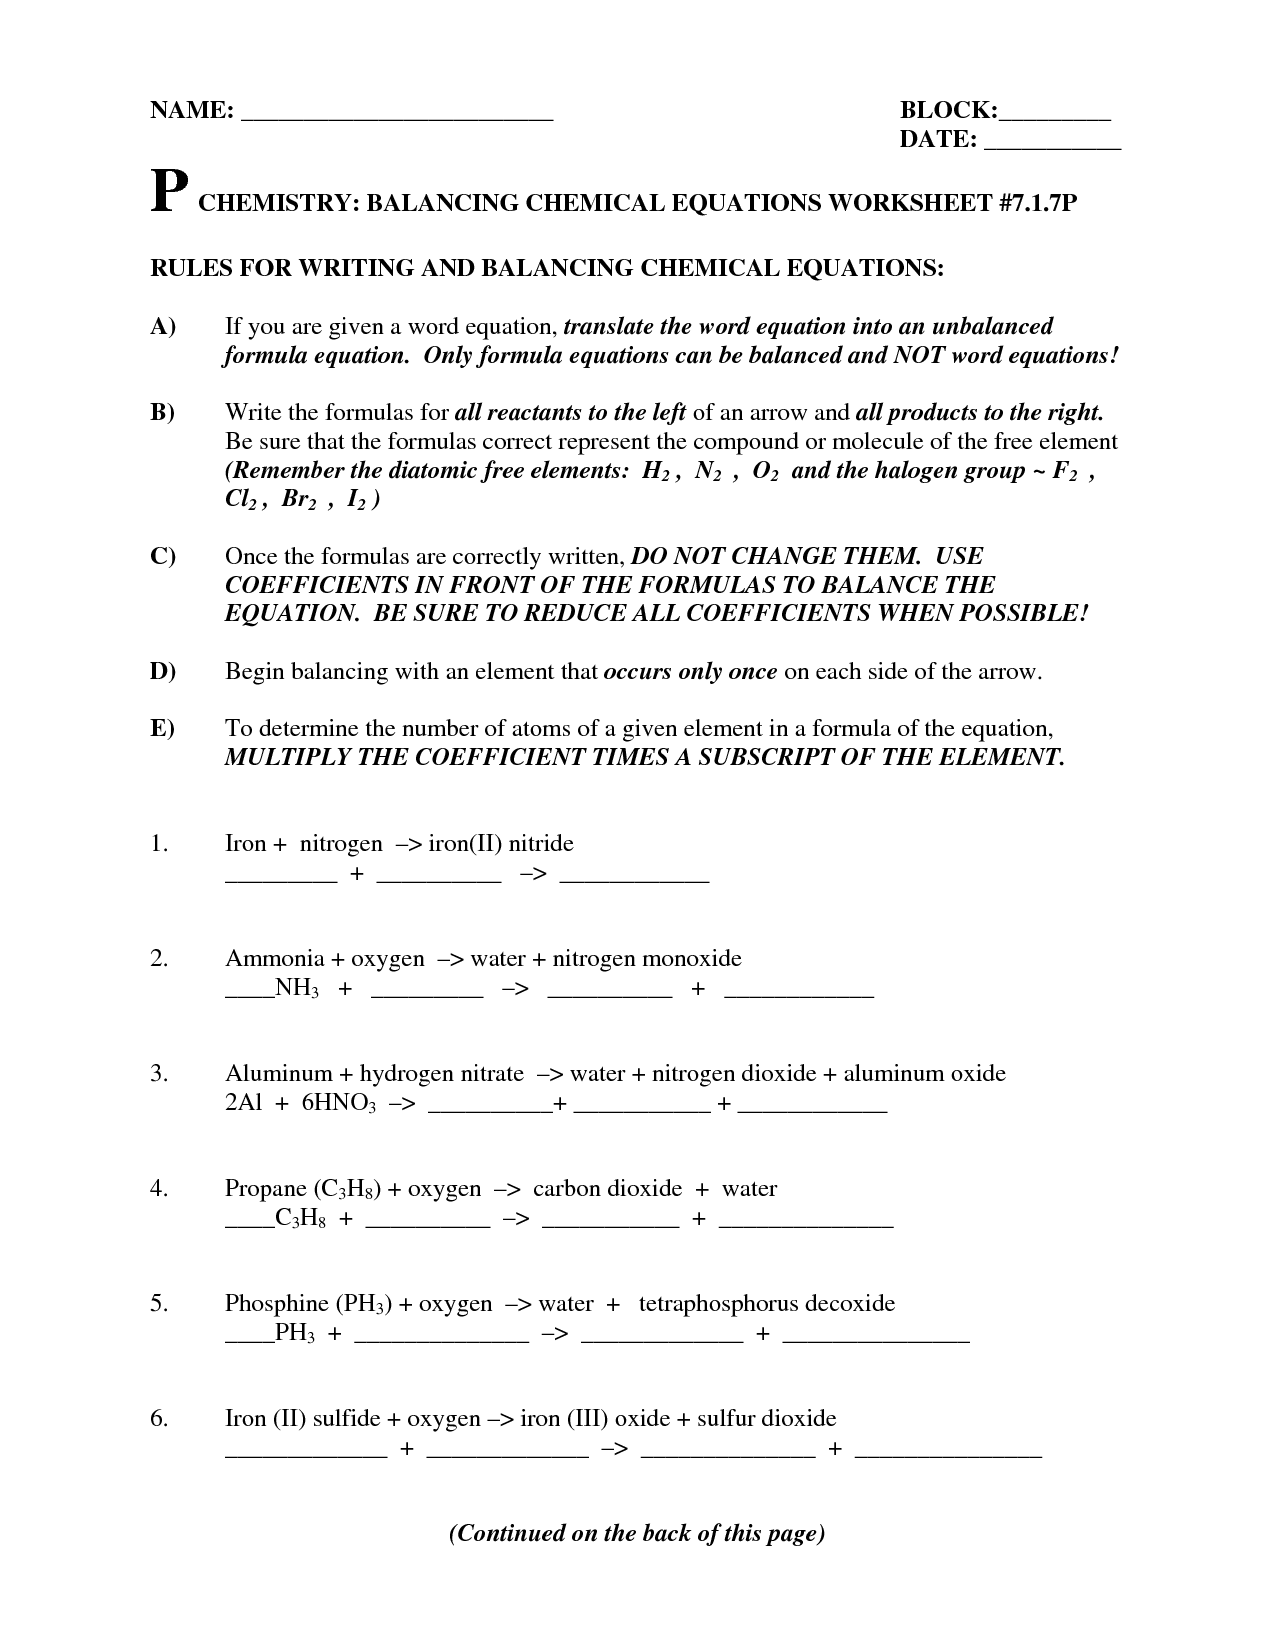 Chemistry Balancing Equations Worksheet